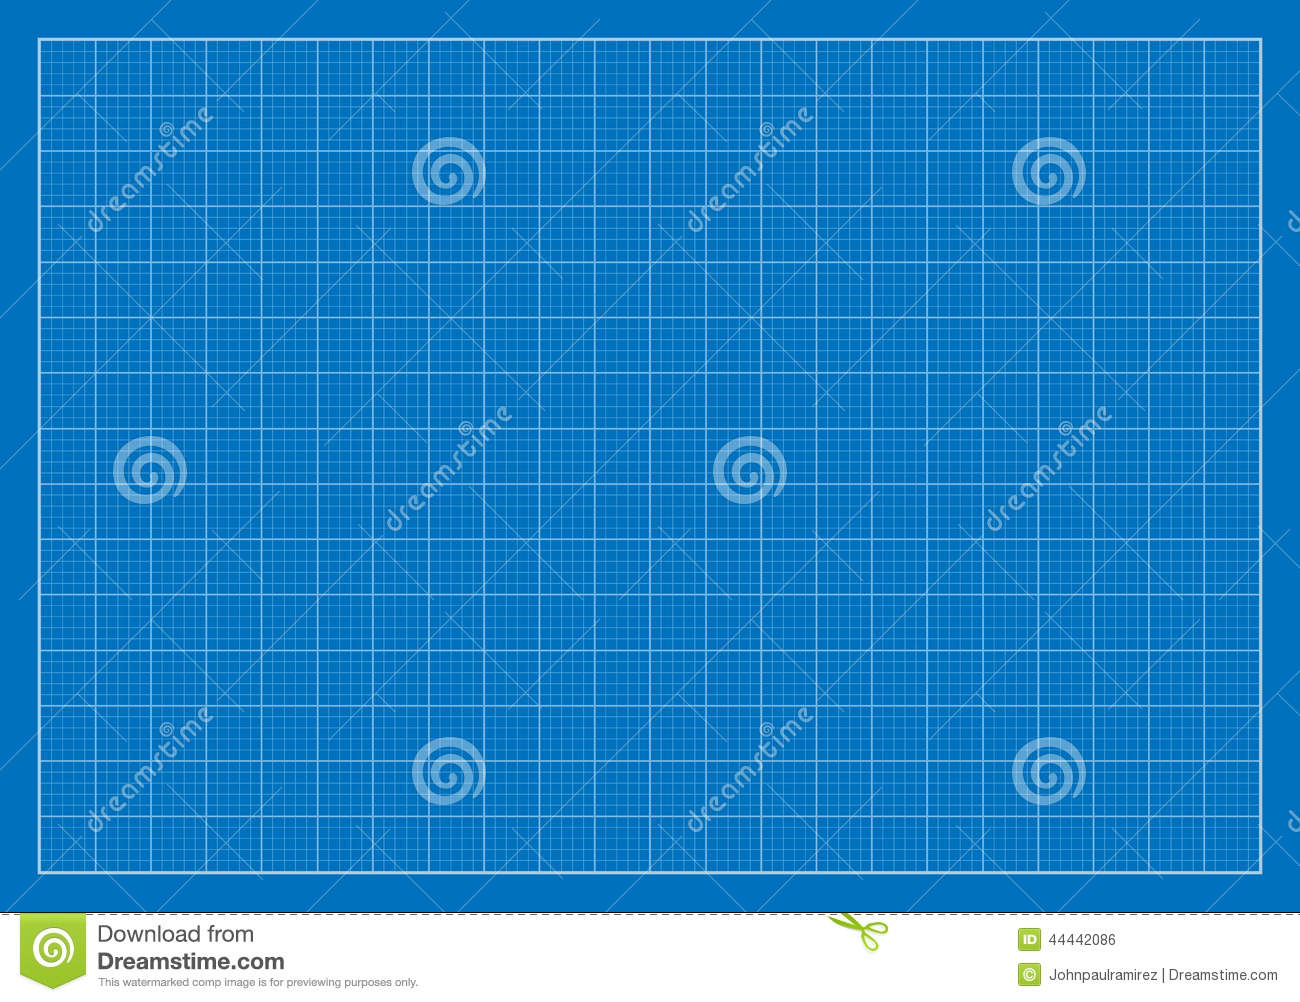 Blank blueprint grid architecture stock vector image for Architecture blueprint